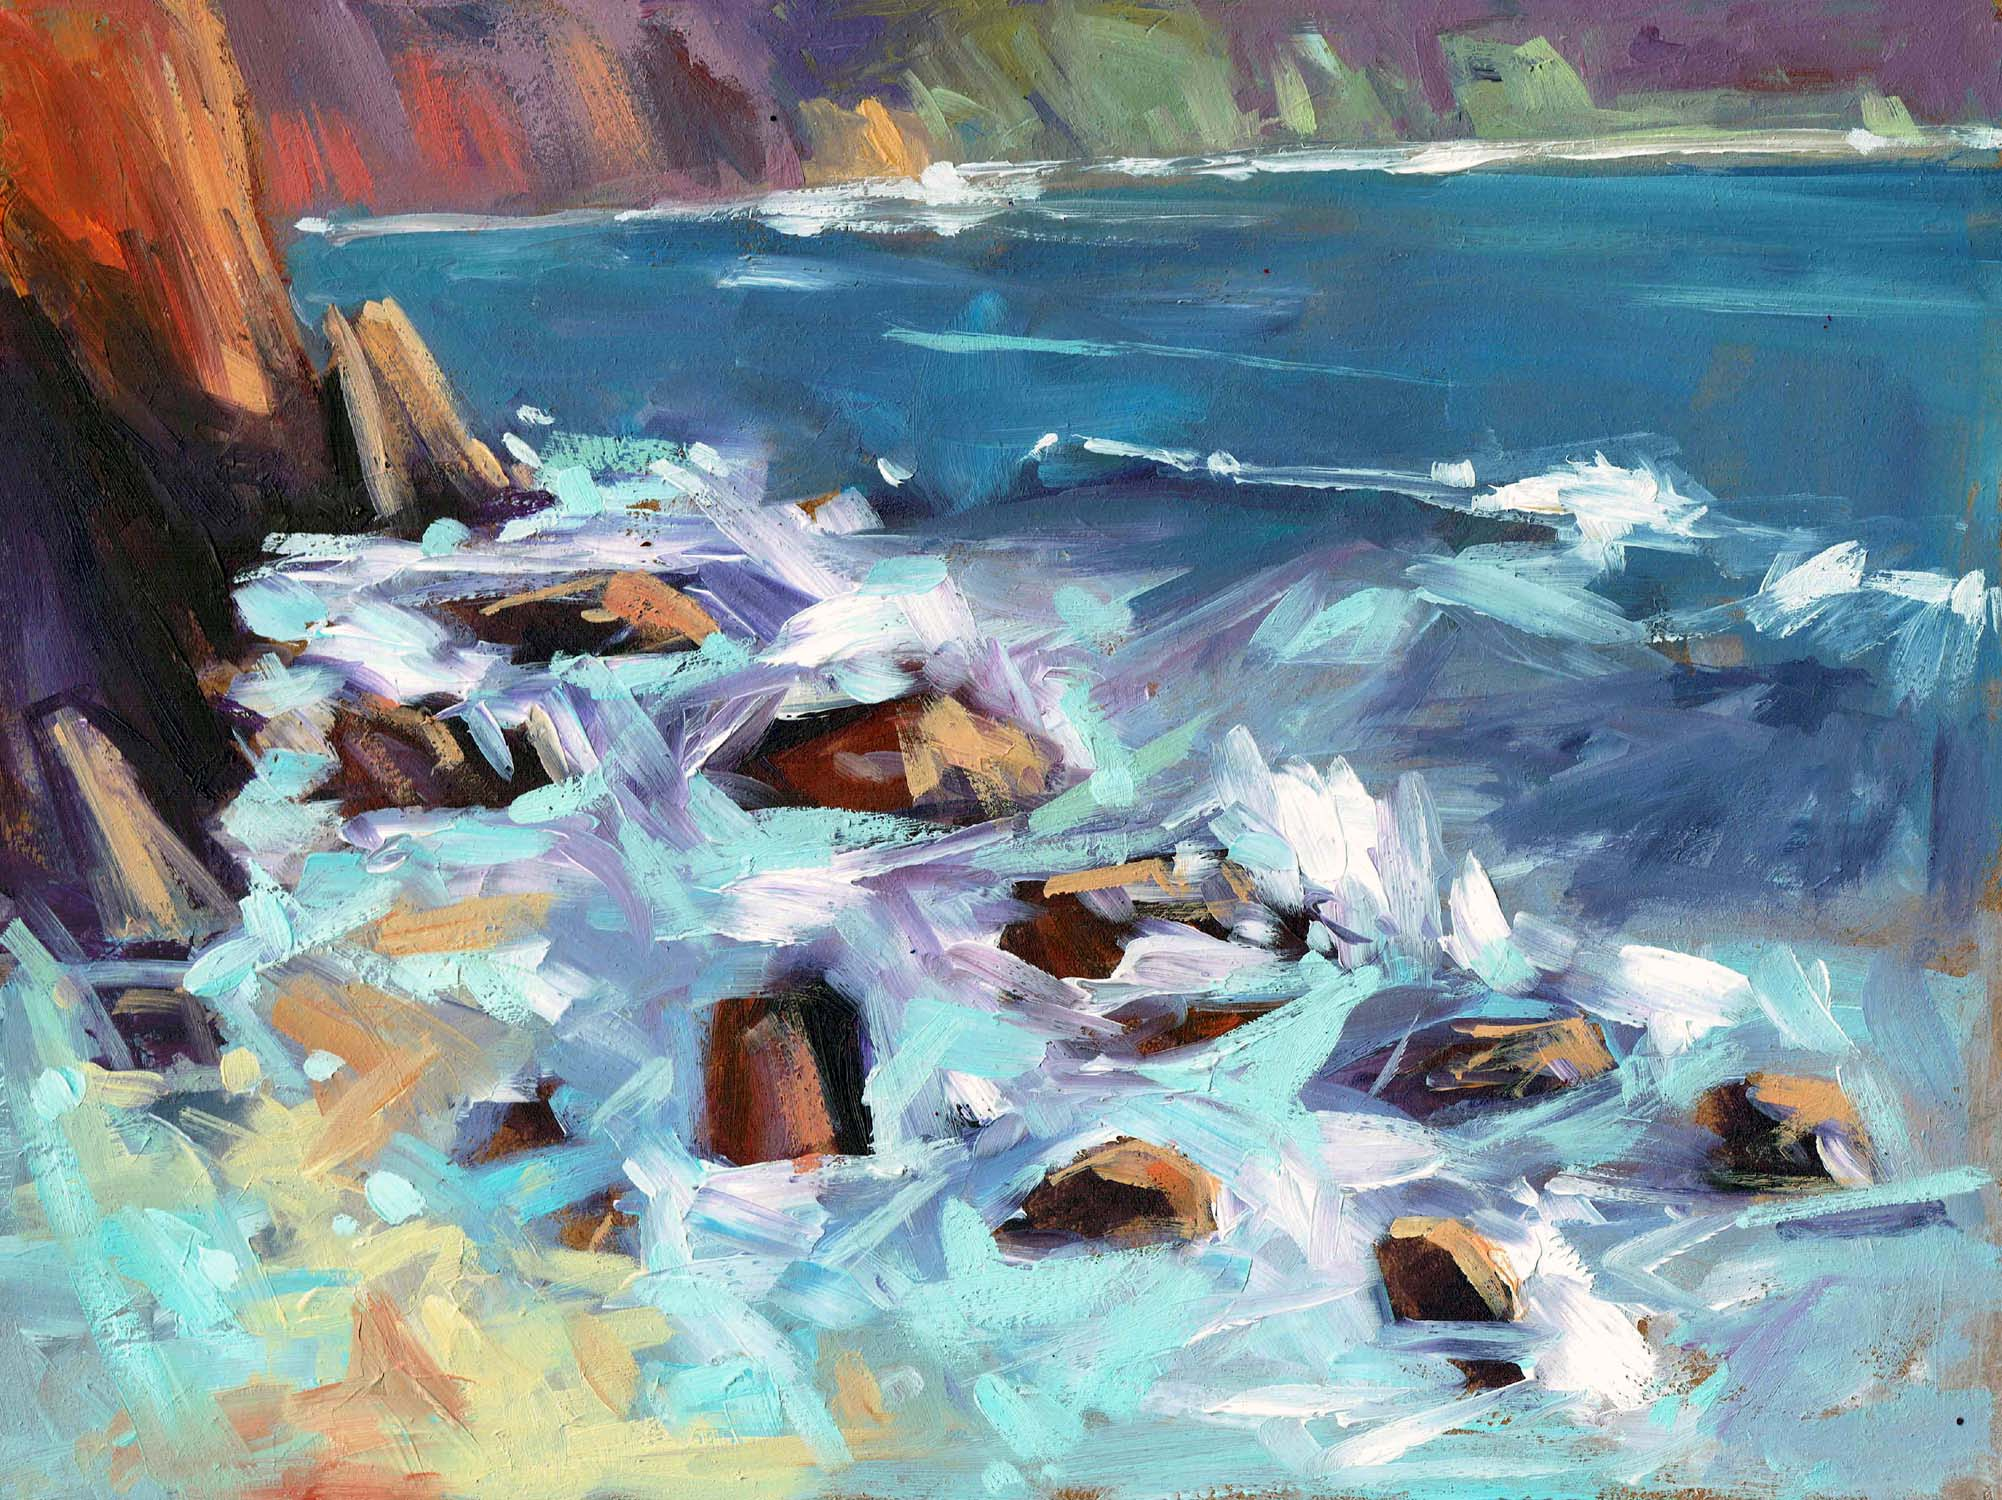 Rocks on Priests Cove   oil on paper    15 x 20cm   sold